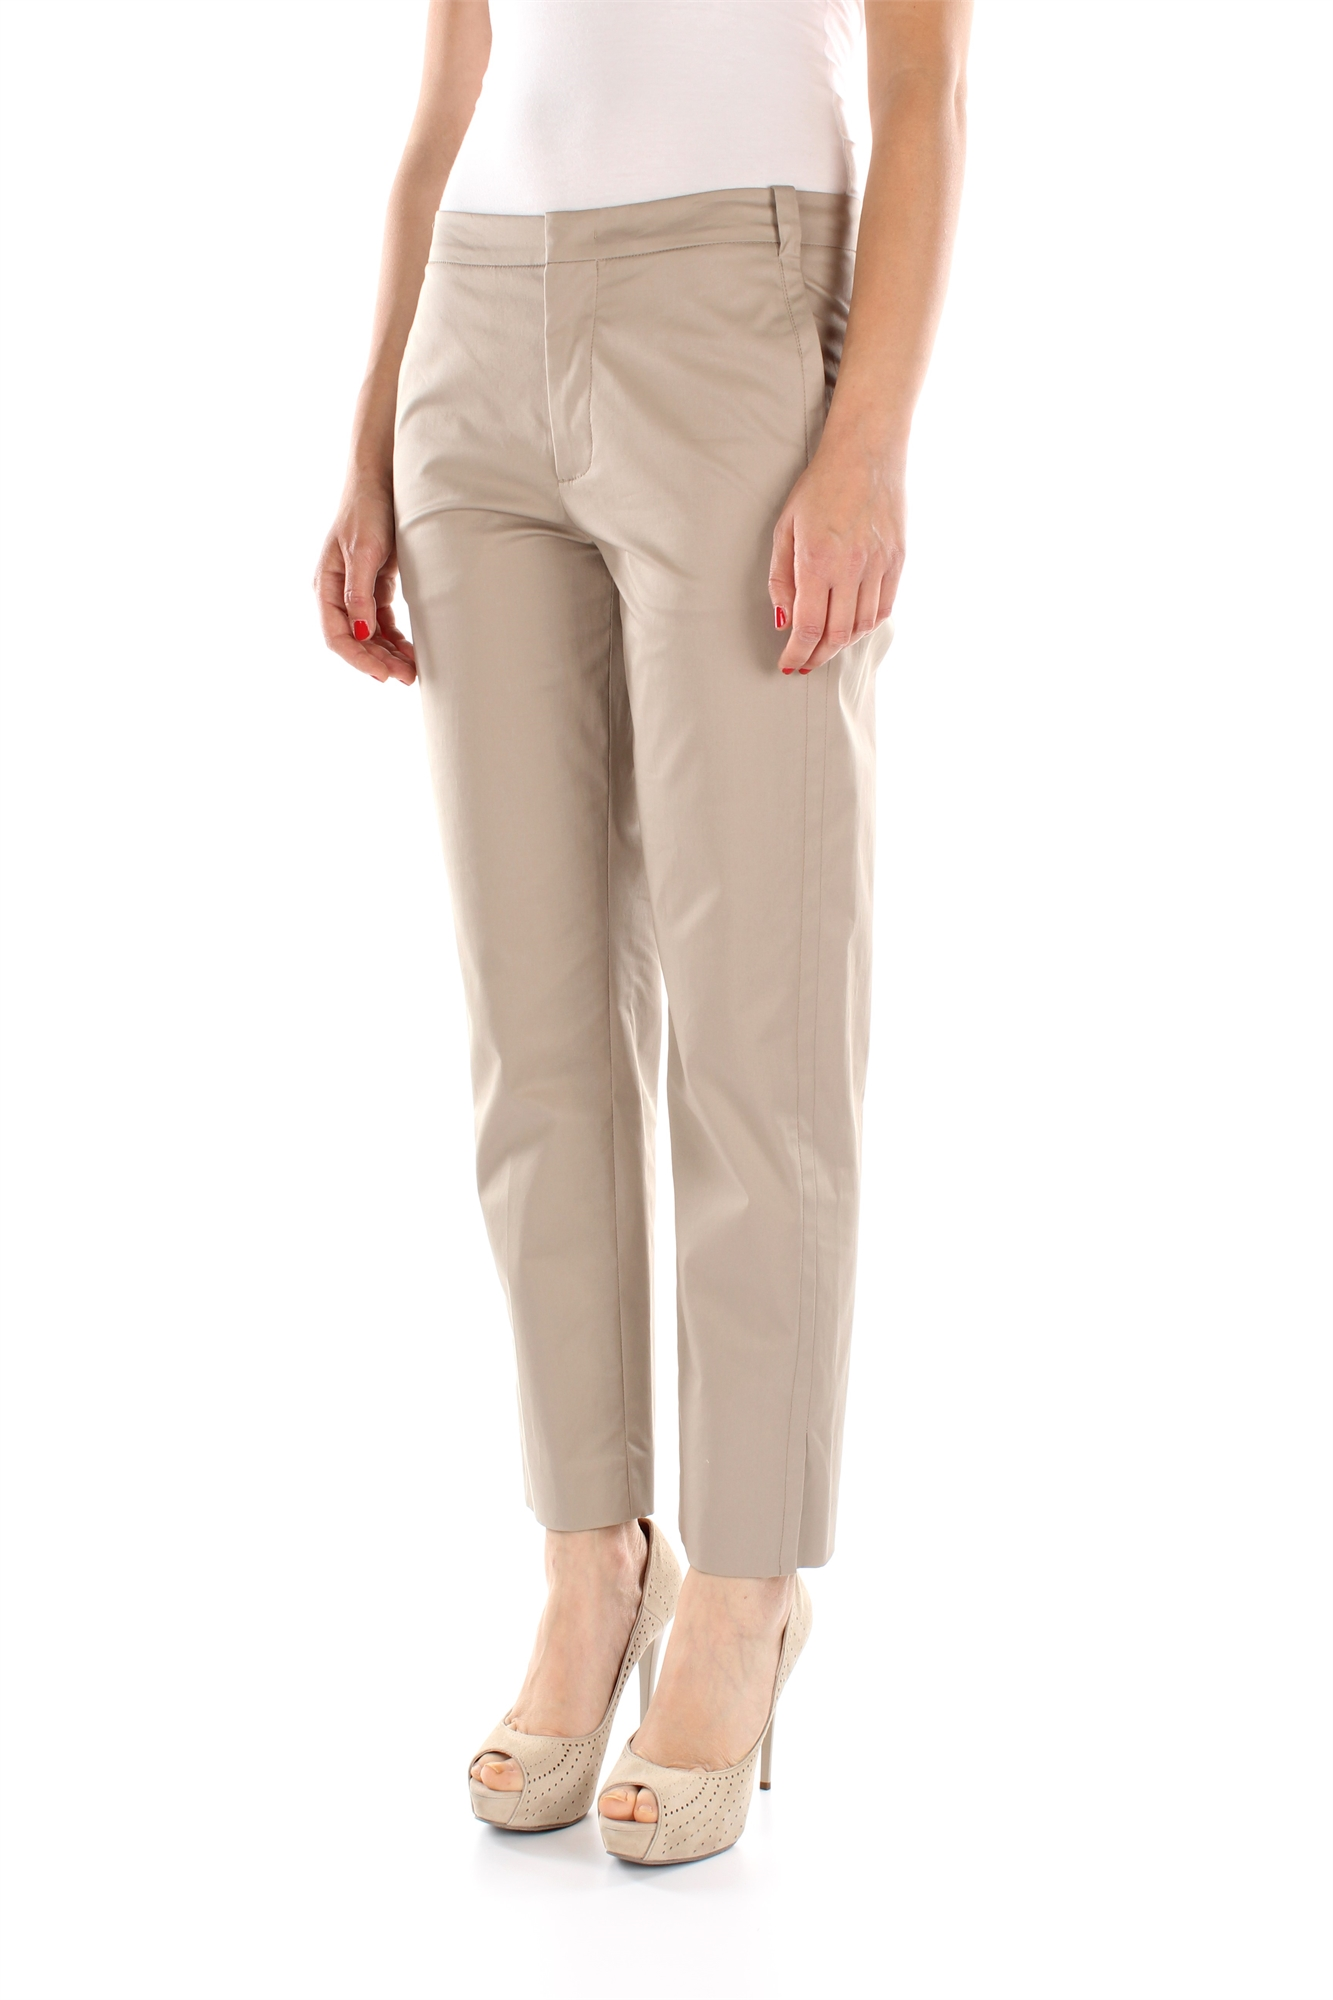 Original If You Are A Woman, The Best Travel Pants Will Look Stylish With A Feminine Top And A Pair Of Pumps, Heels Or Flip Flops, But Also Work Well When Worn With And Activities Heres Our Top Picks For The Best Travel Pants For Women And Why We